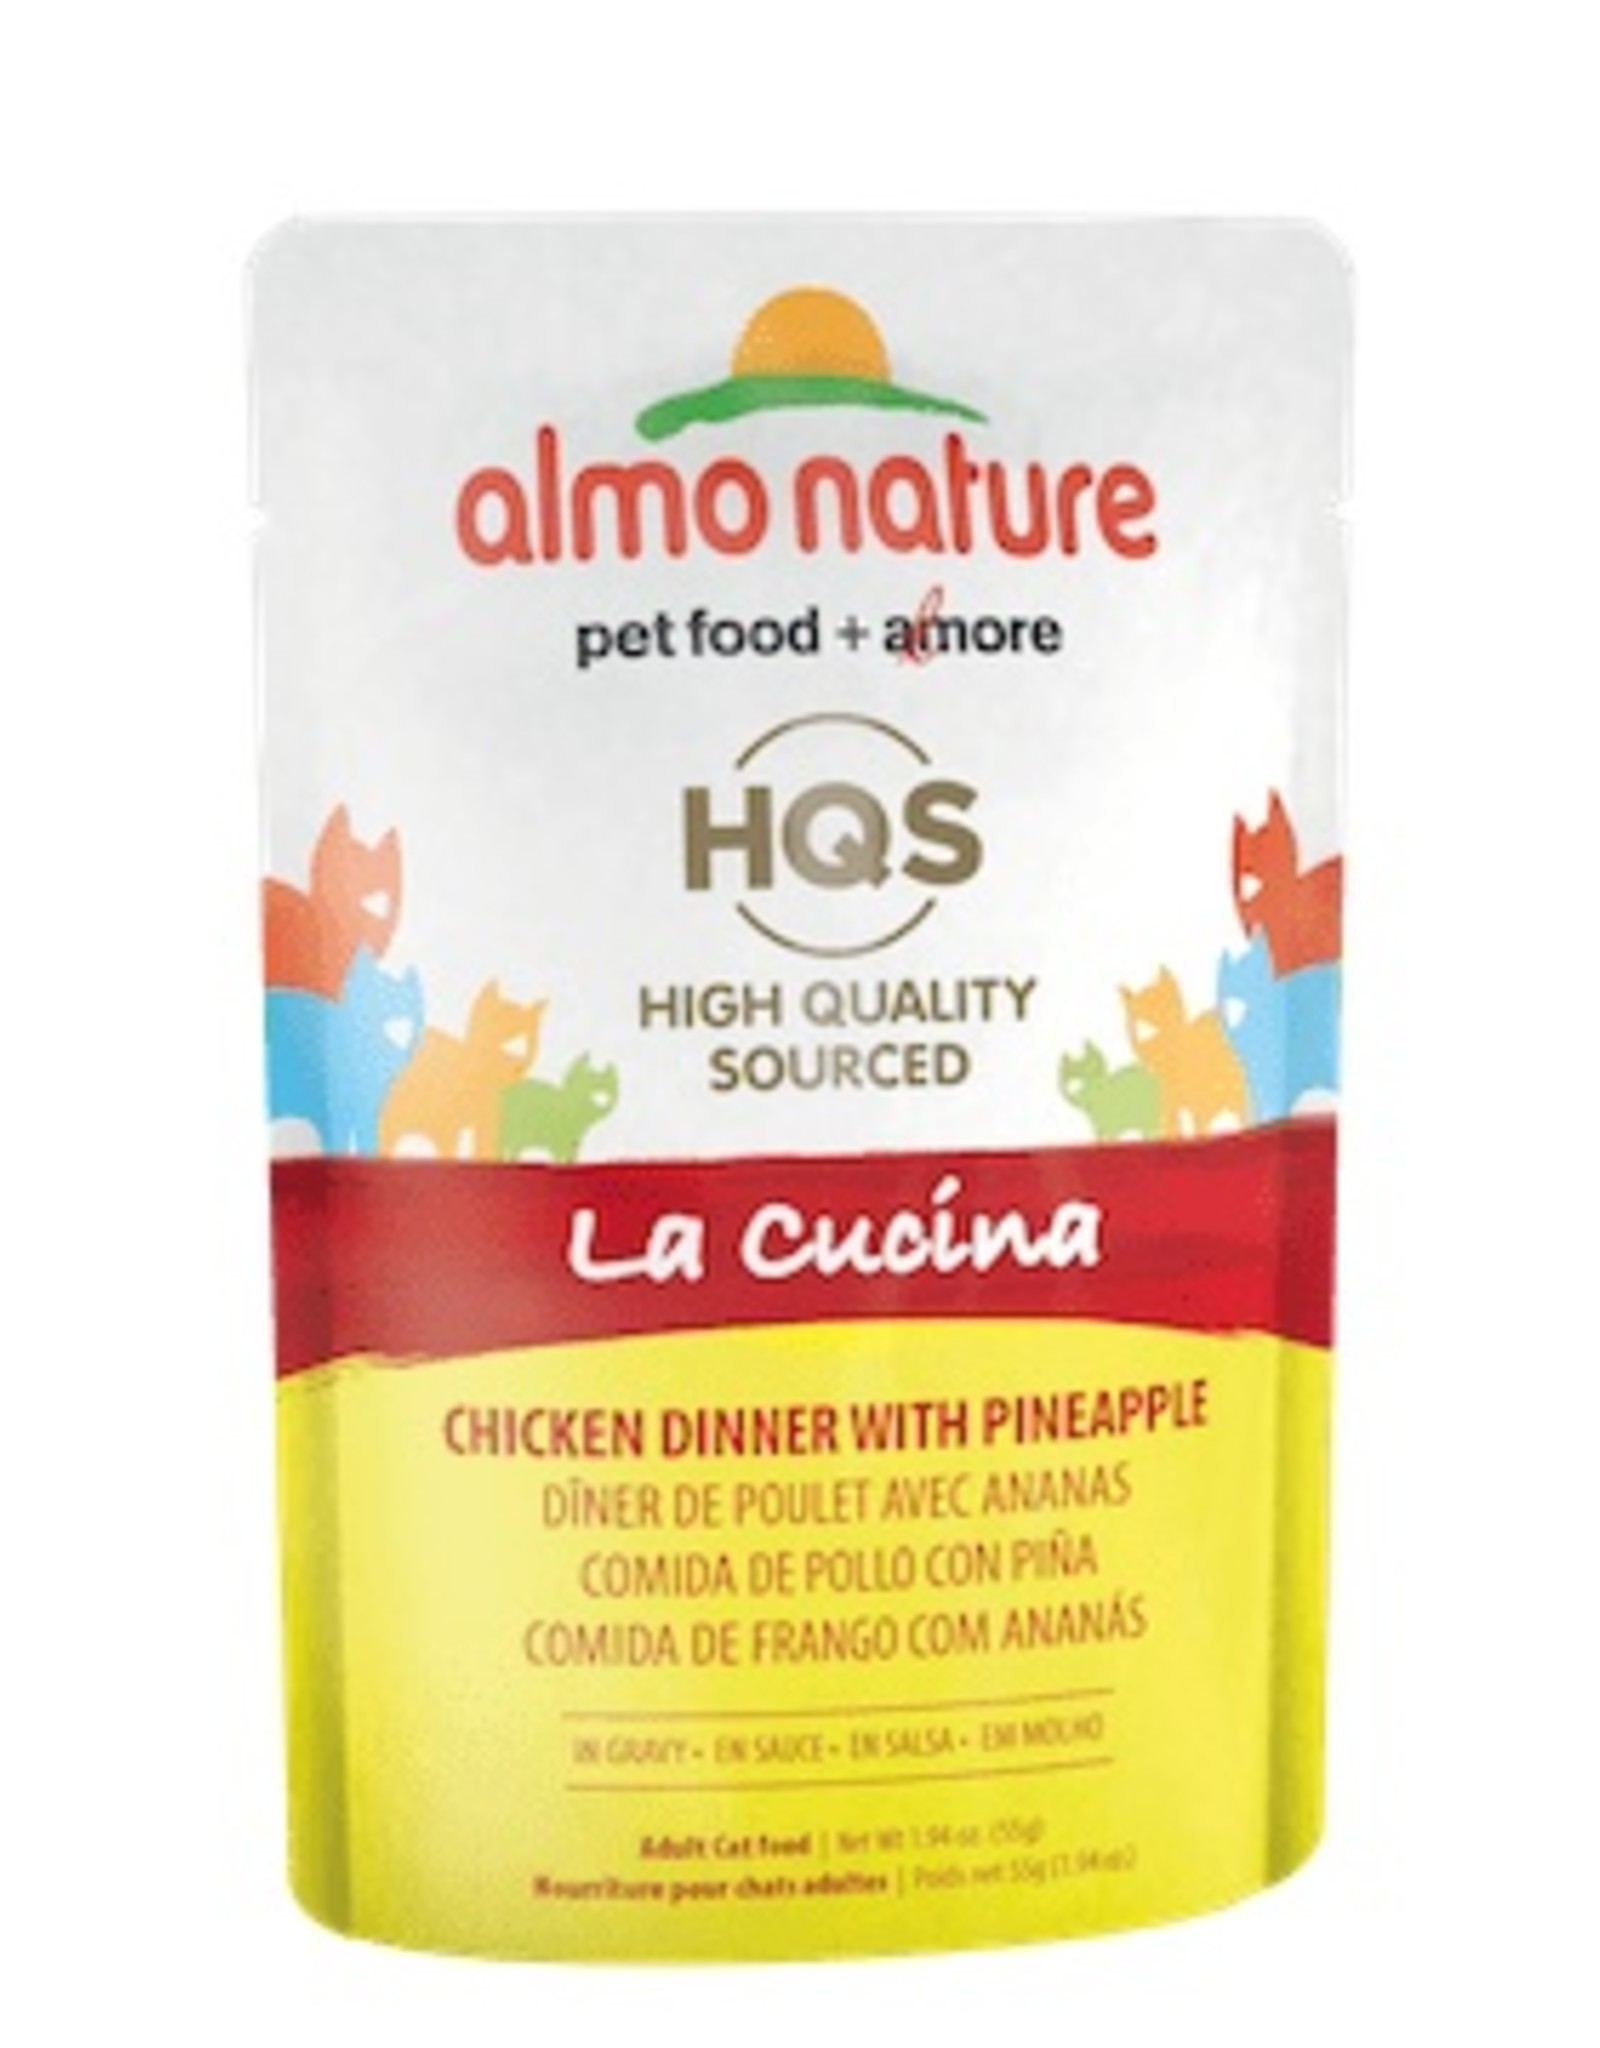 Almo Nature Almo Nature La Cucina Chicken Dinner with Pineapples Pouch